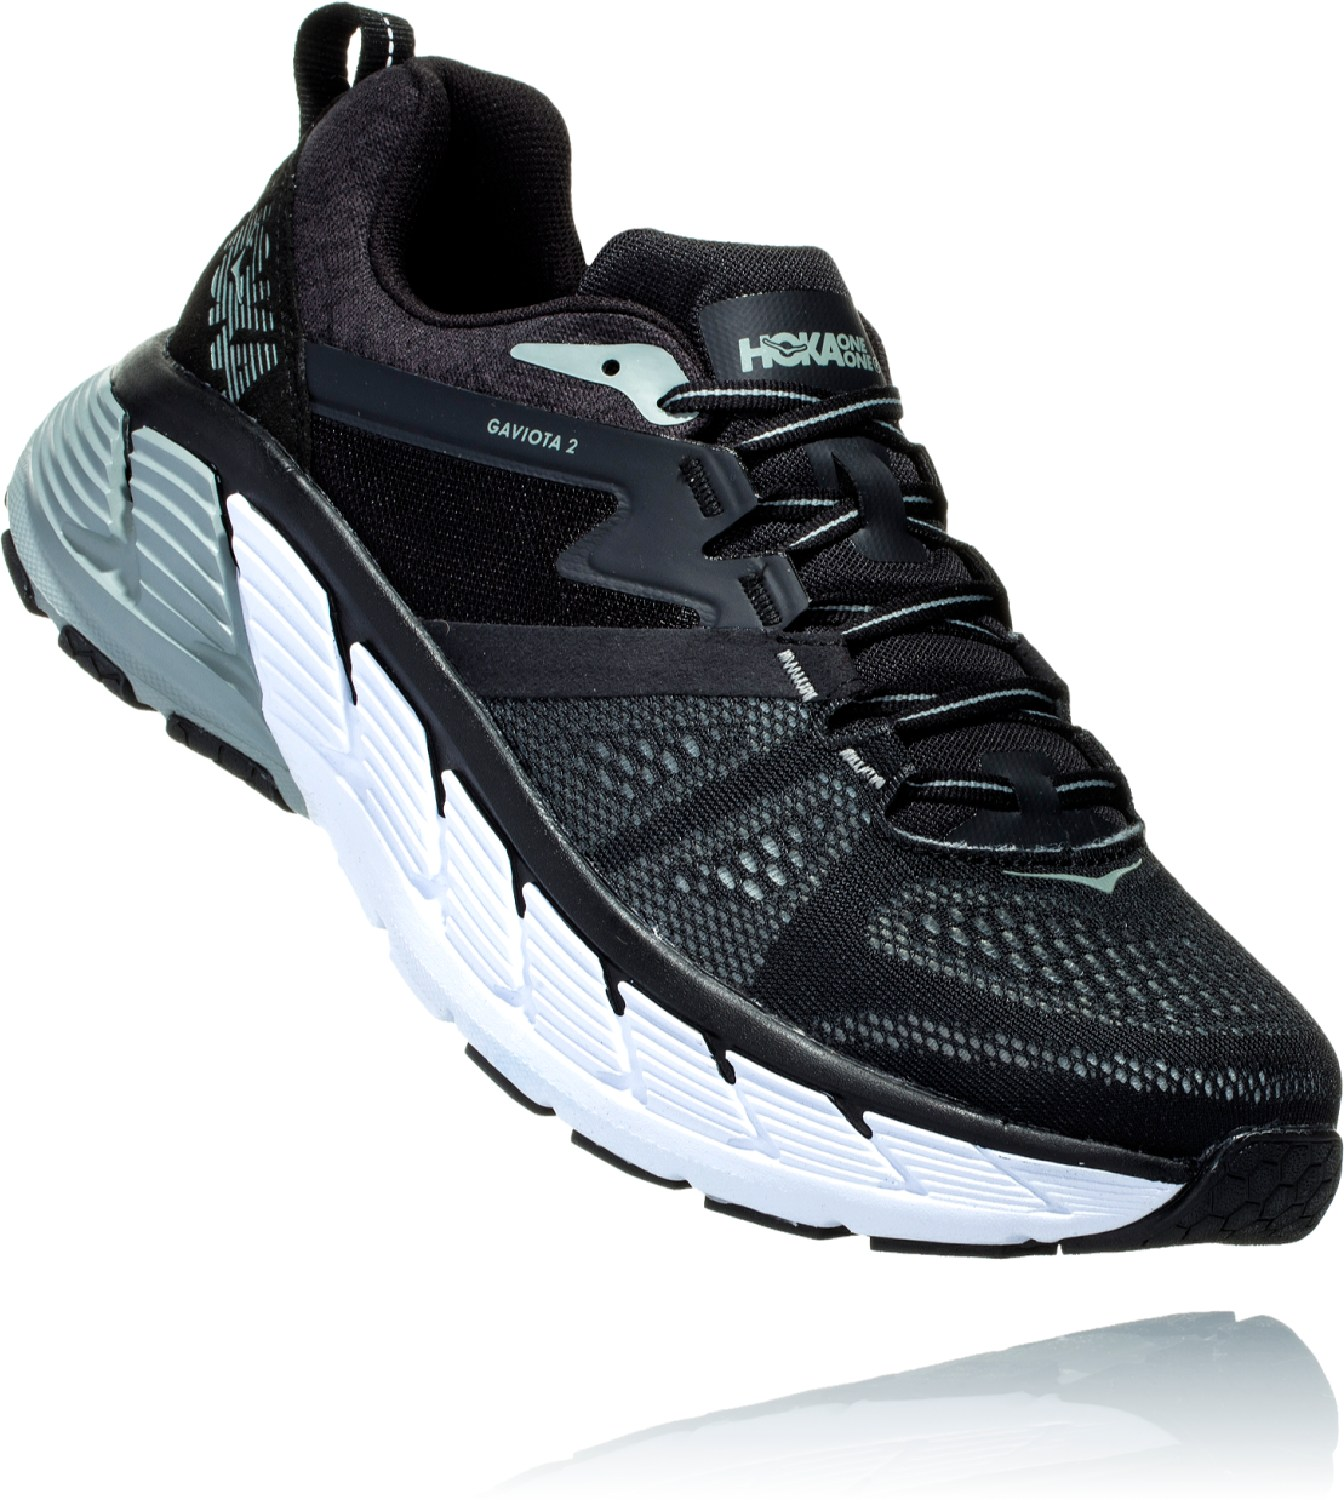 HOKA ONE ONE Gaviota 2 Road-Running Shoes - Men's